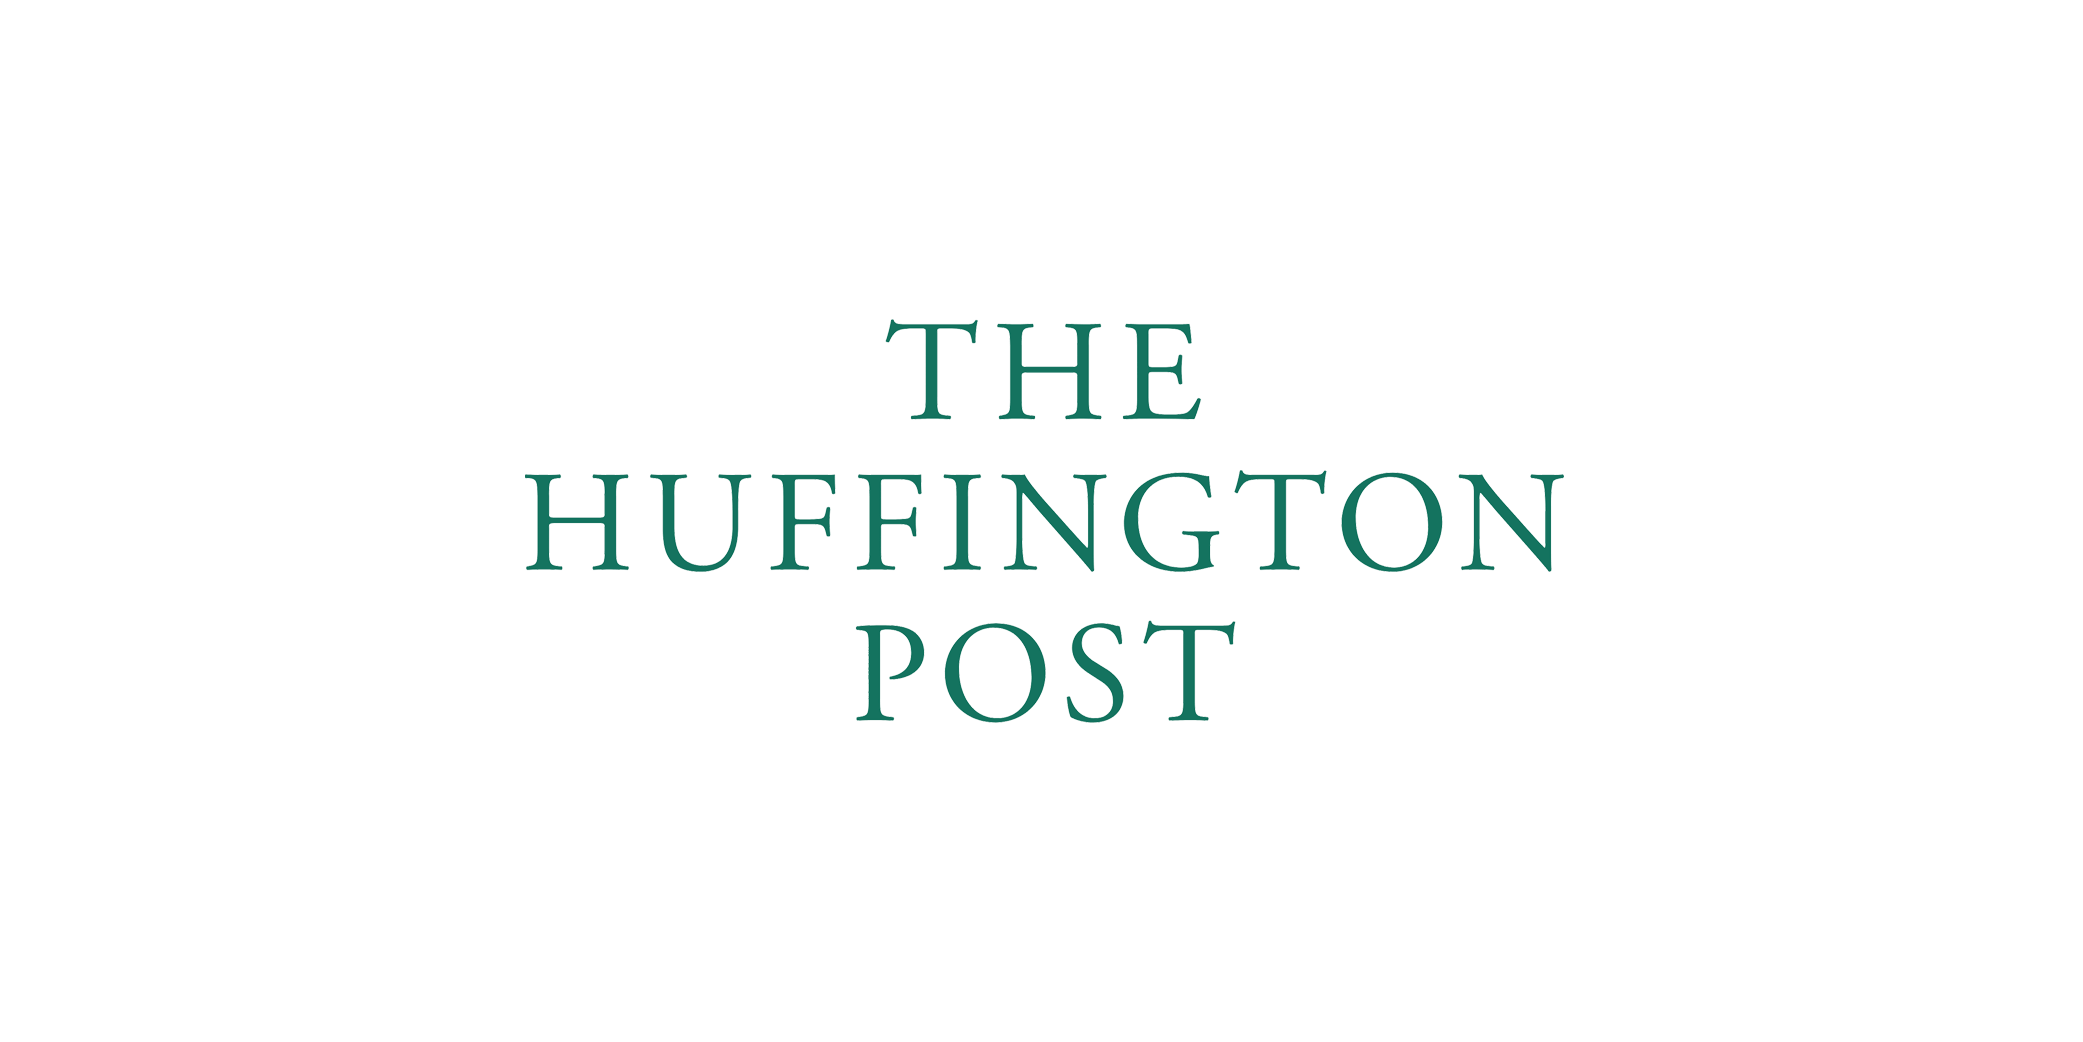 Small business news from Huffington Post